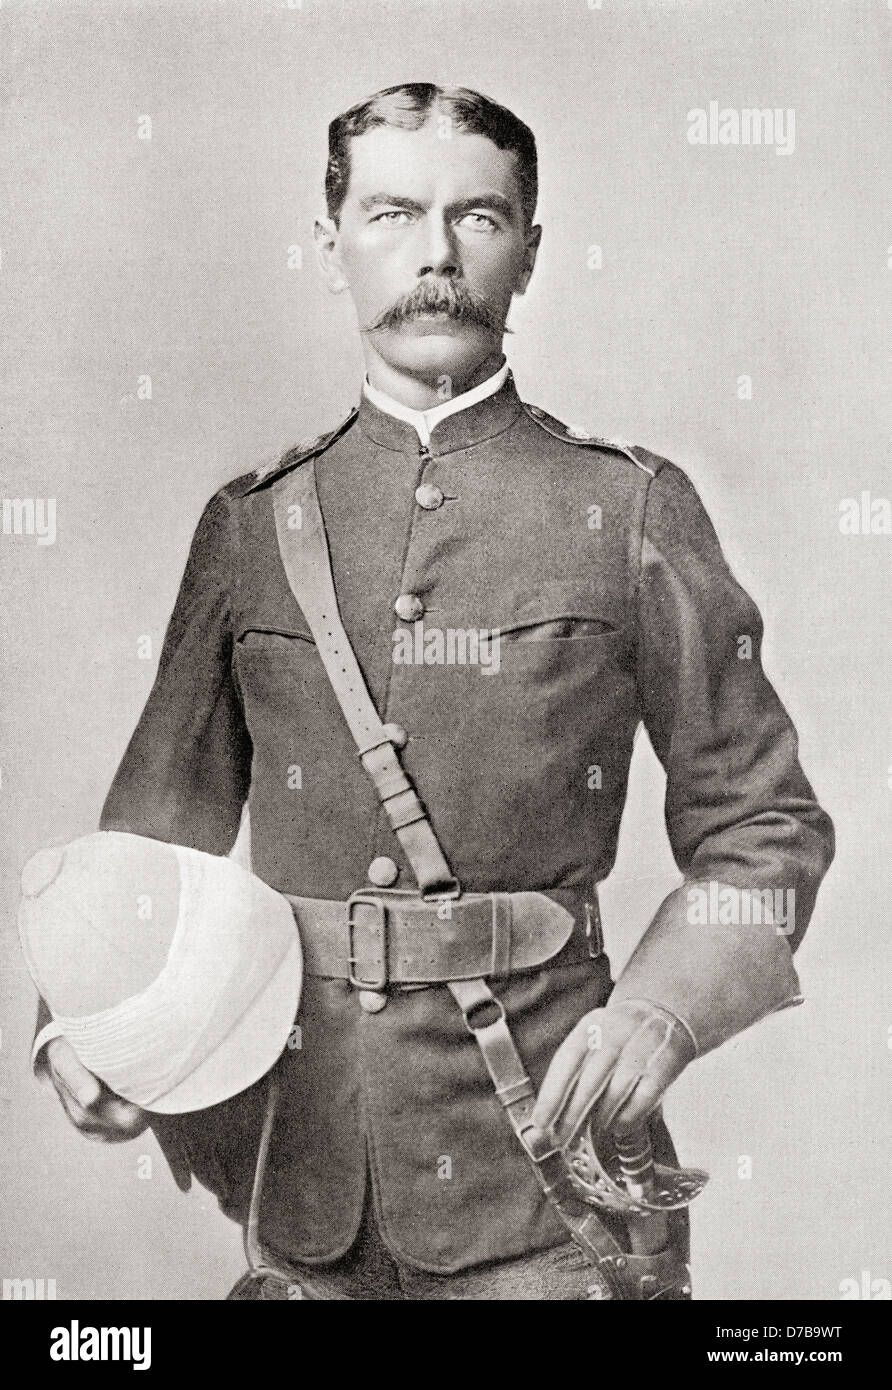 Lord Kitchener in 1882 as Major of the Egyptian Cavalry. - Stock Image